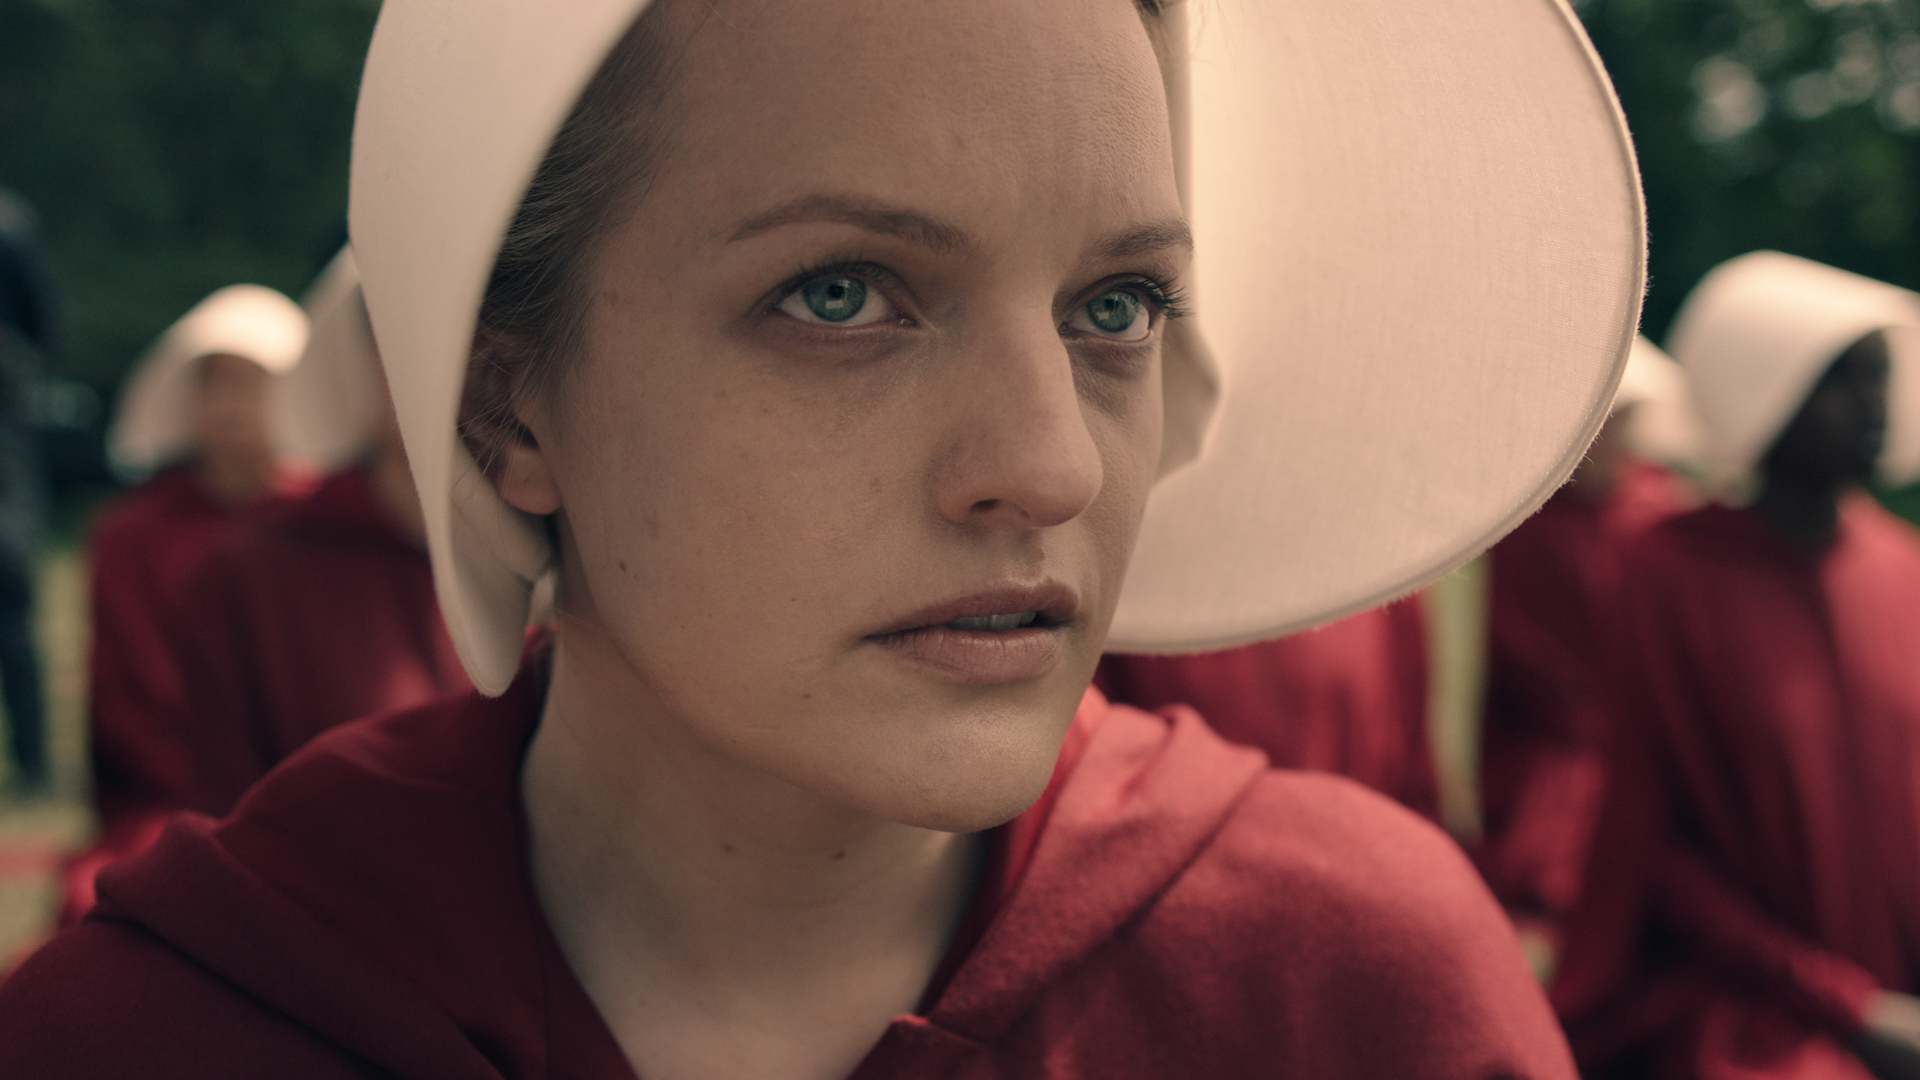 THE HANDMAID'S TALE -- The drama series, based on the award-winning, best-selling novel by Margaret Atwood, is the story of life in the dystopia of Gilead, a totalitarian society in what was formerly part of the United States. Facing environmental disasters and a plunging birthrate, Gilead is ruled by a fundamentalist regime that treats women as property of the state. As one of the few remaining fertile women, Offred (Elisabeth Moss) is a Handmaid in the Commander's household, one of the caste of women forced into sexual servitude as a last desperate attempt to repopulate a devastated world. In this terrifying society where one wrong word could end her life, Offred navigates between Commanders, their cruel Wives, domestic Marthas, and her fellow Handmaids – where anyone could be a spy for Gilead – all with one goal: to survive and find the daughter that was taken from her. Offred (Elisabeth Moss), shown. (Photo by: Take Five/Hulu)